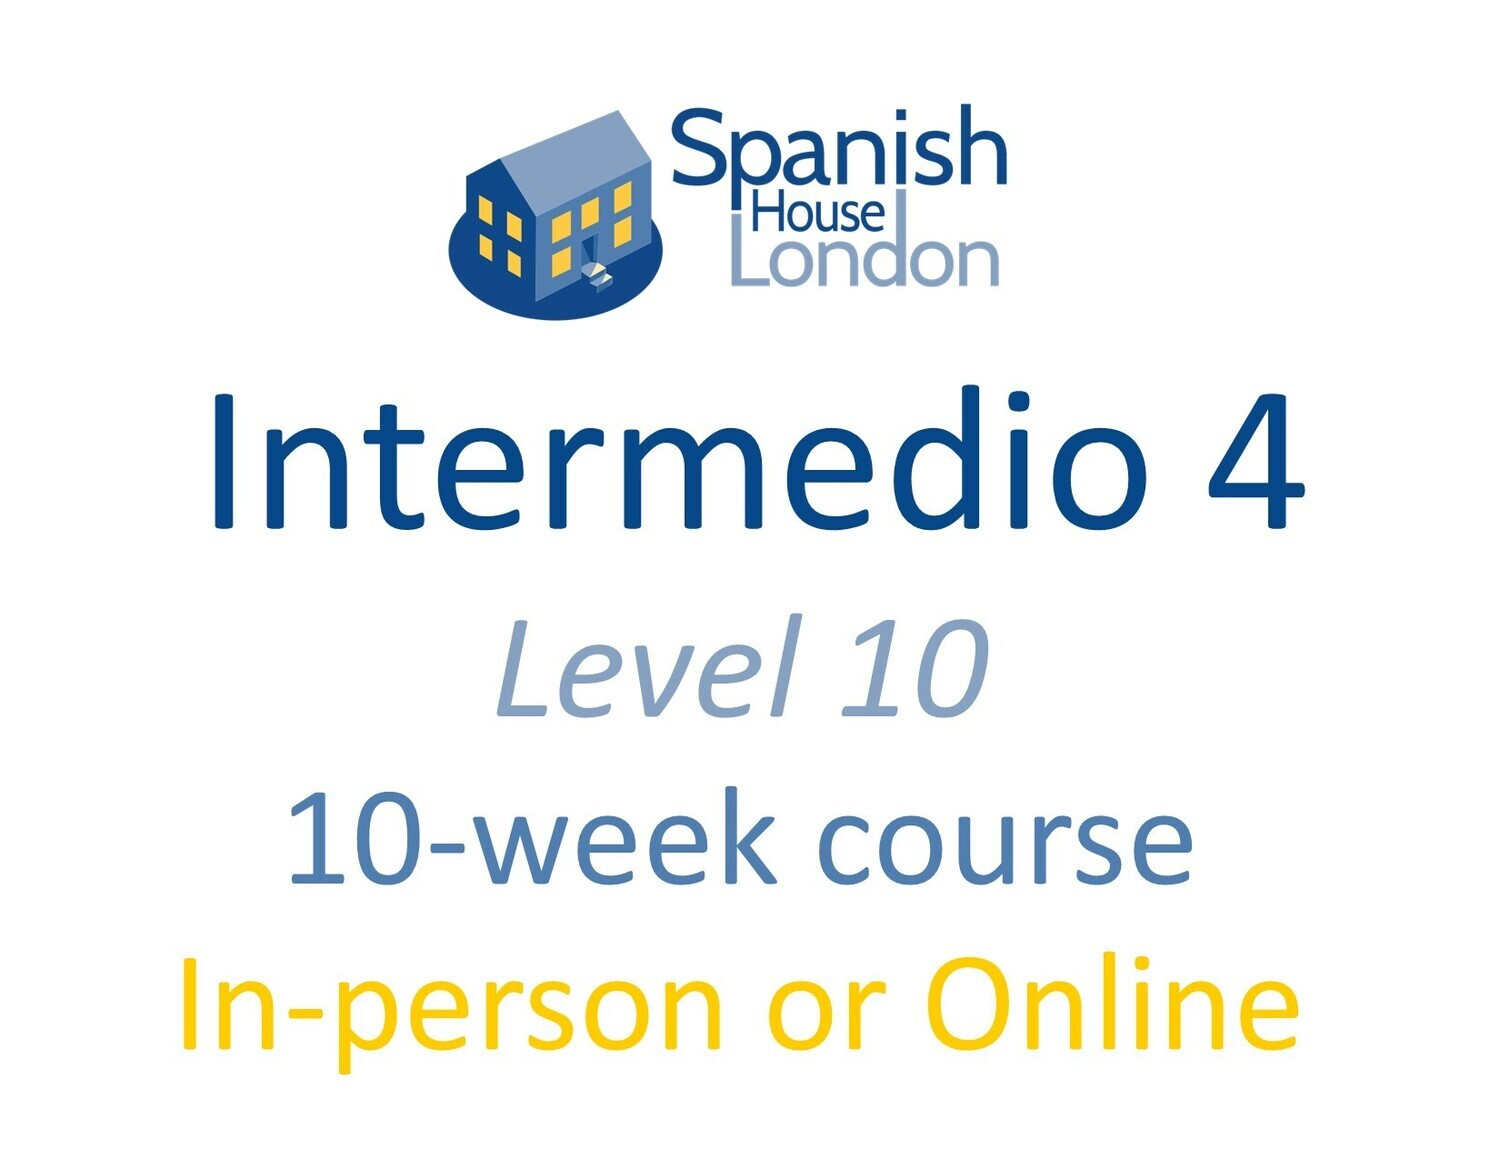 Intermedio 4 Course starting on 22nd November at 6pm in Clapham North